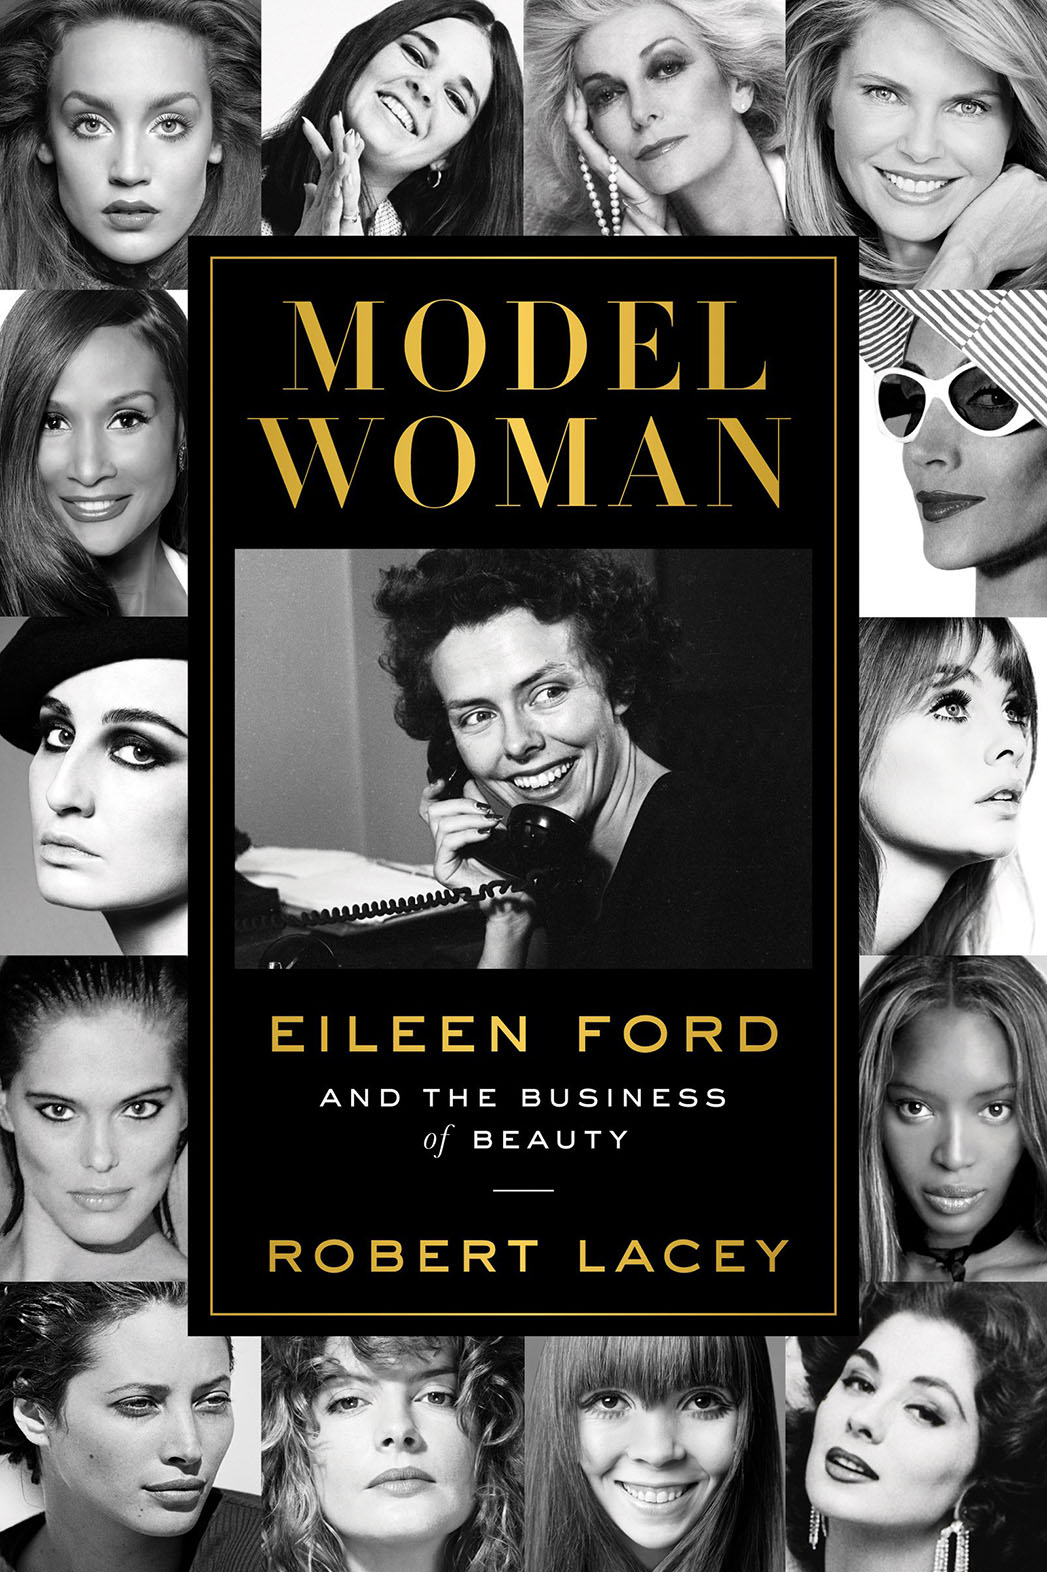 Model Woman - Eileen Ford and the Business of Beauty